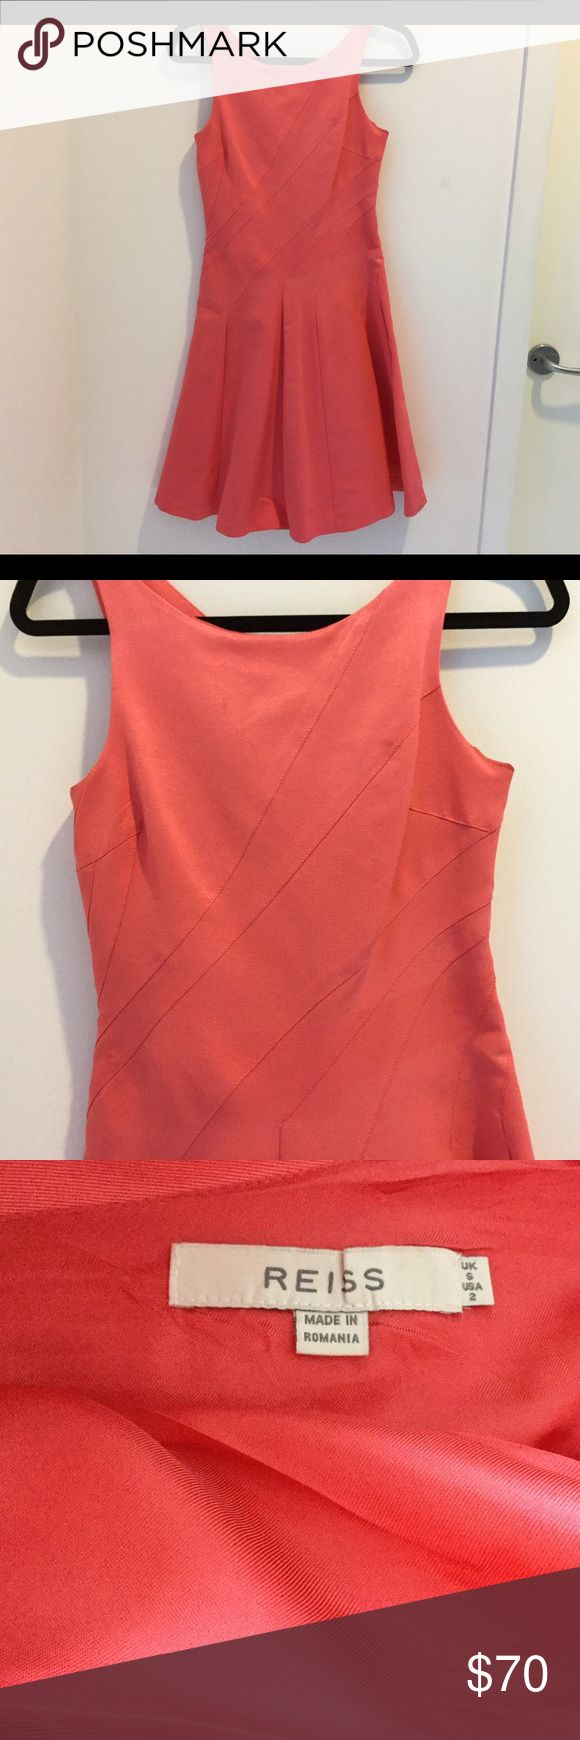 Coral flared dress by Reiss. Feminine and sexy. Turn heads in this beautiful designer number! Excellent preloved condition. flared skirt Reiss Dresses